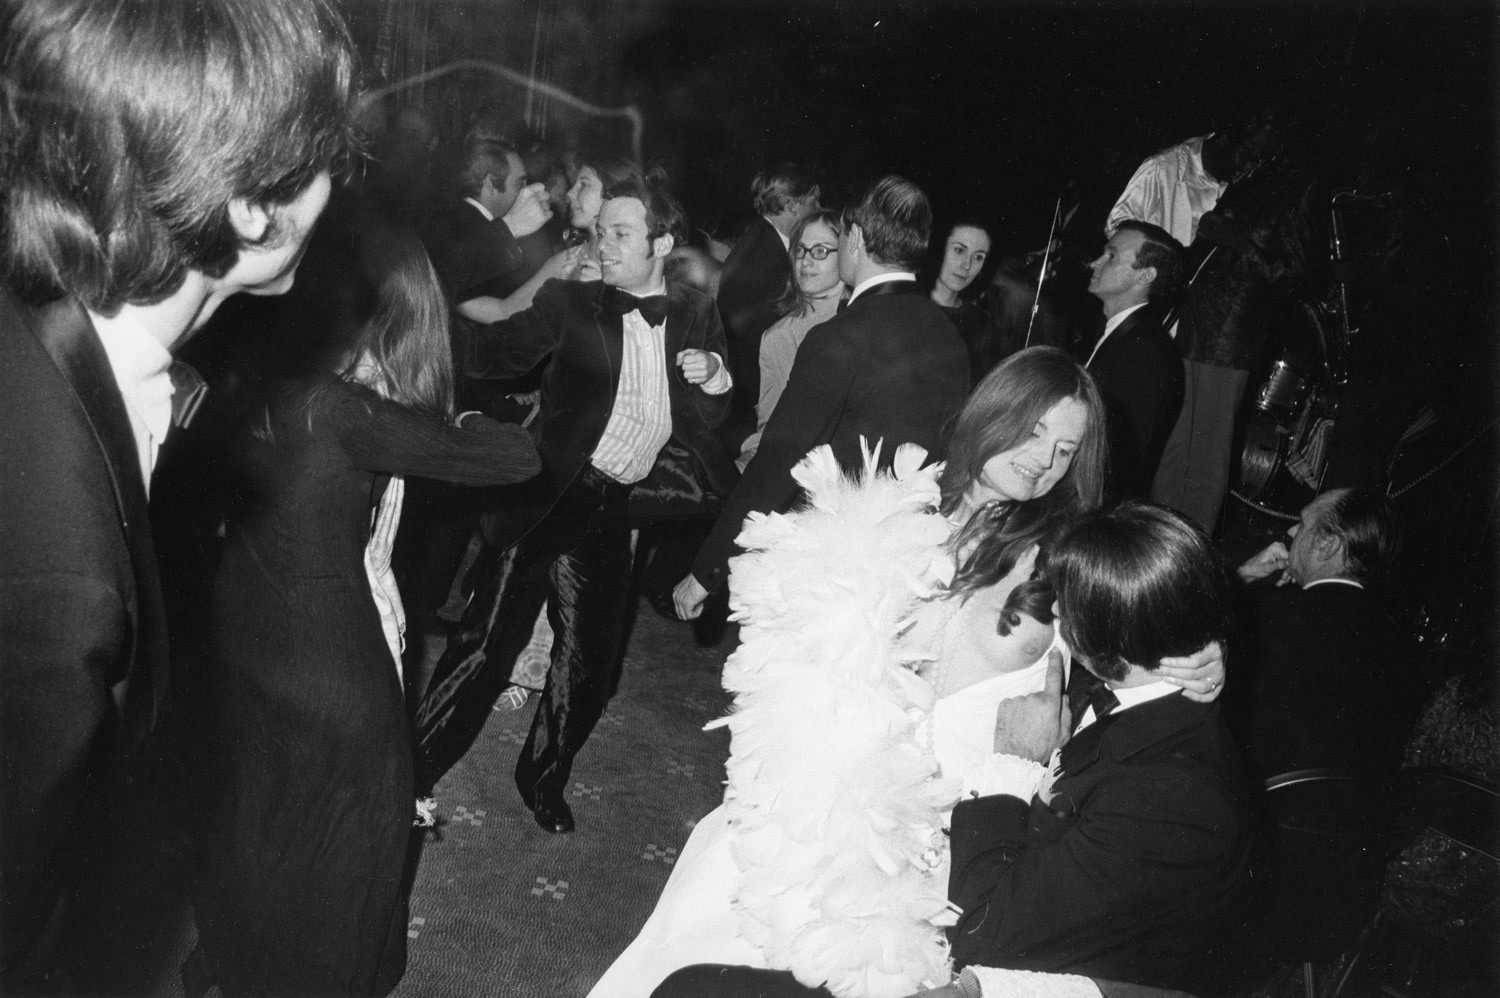 Garry Winogrand, Metropolitan Museum of Art Centennial Ball, New York, 1969